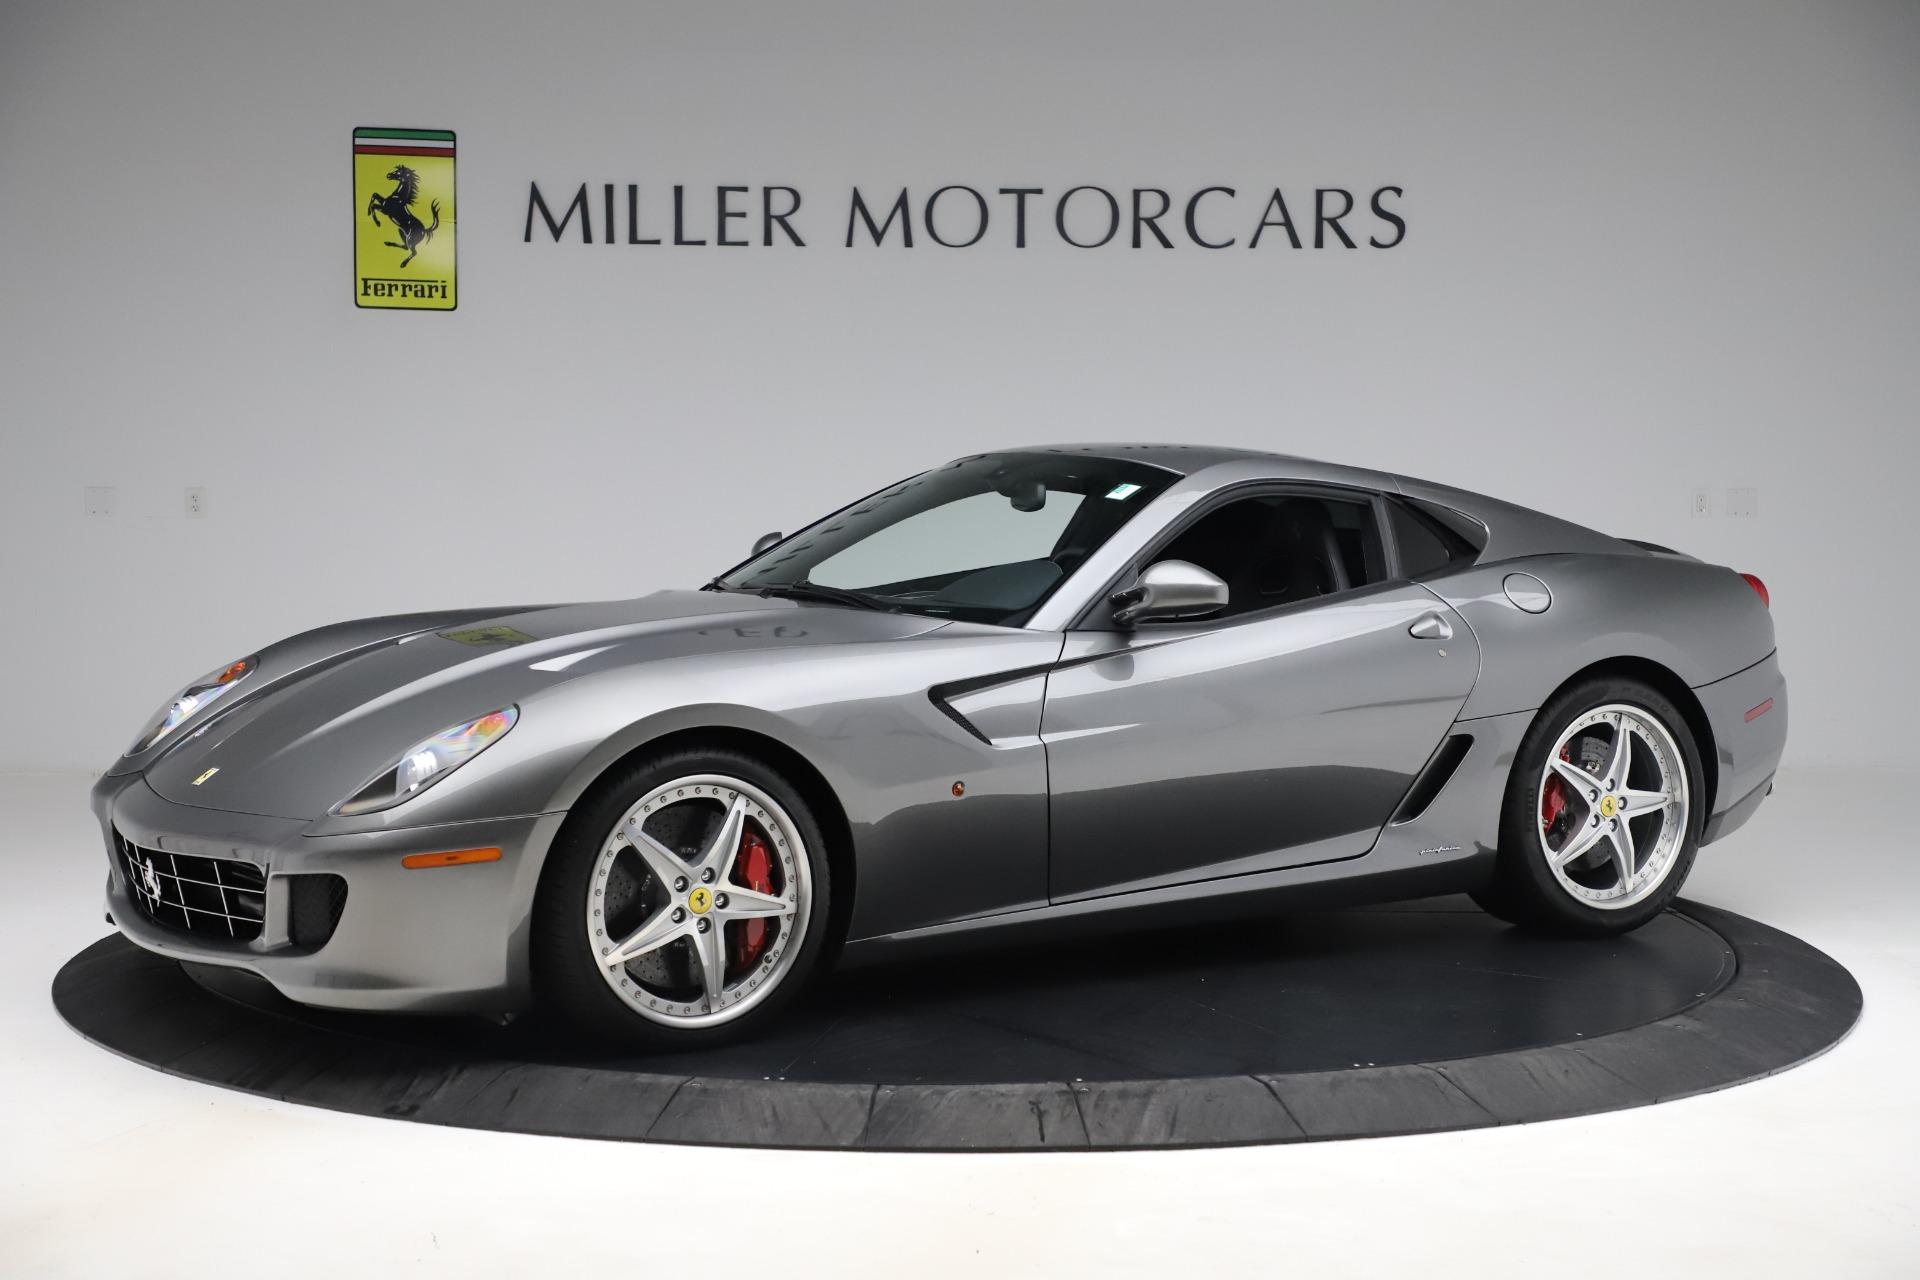 Used 2010 Ferrari 599 GTB Fiorano HGTE For Sale In Westport, CT 3544_p2